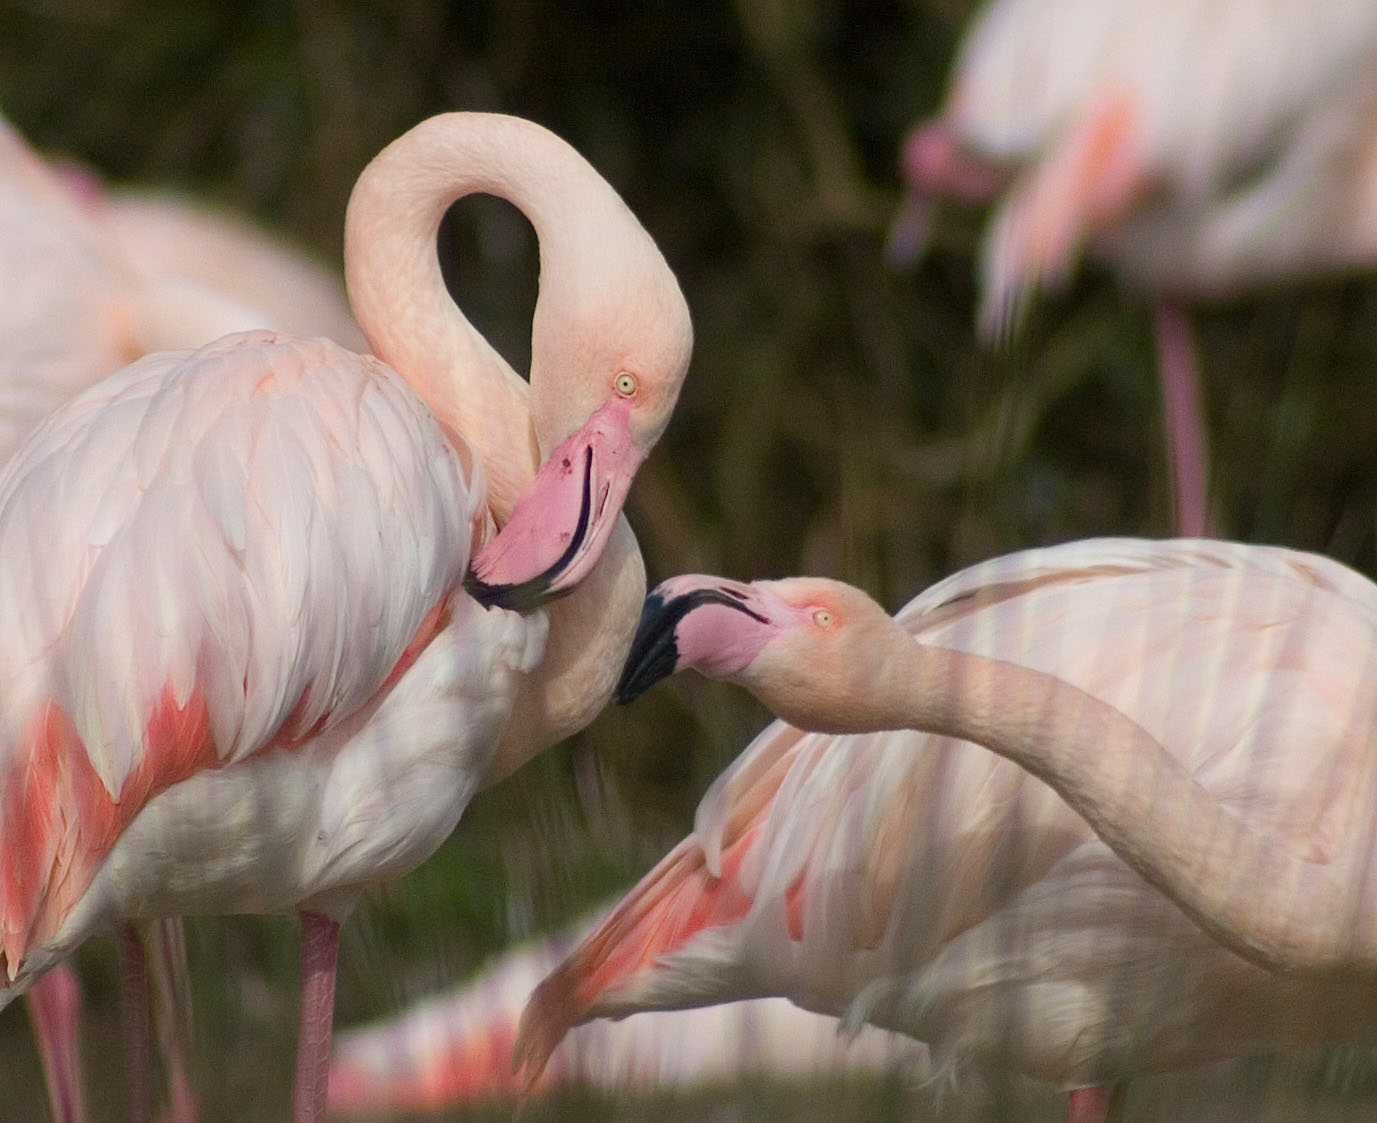 WWT Slimbridge wins Gold for Research at the National Zoo and Aquarium Awards 2019